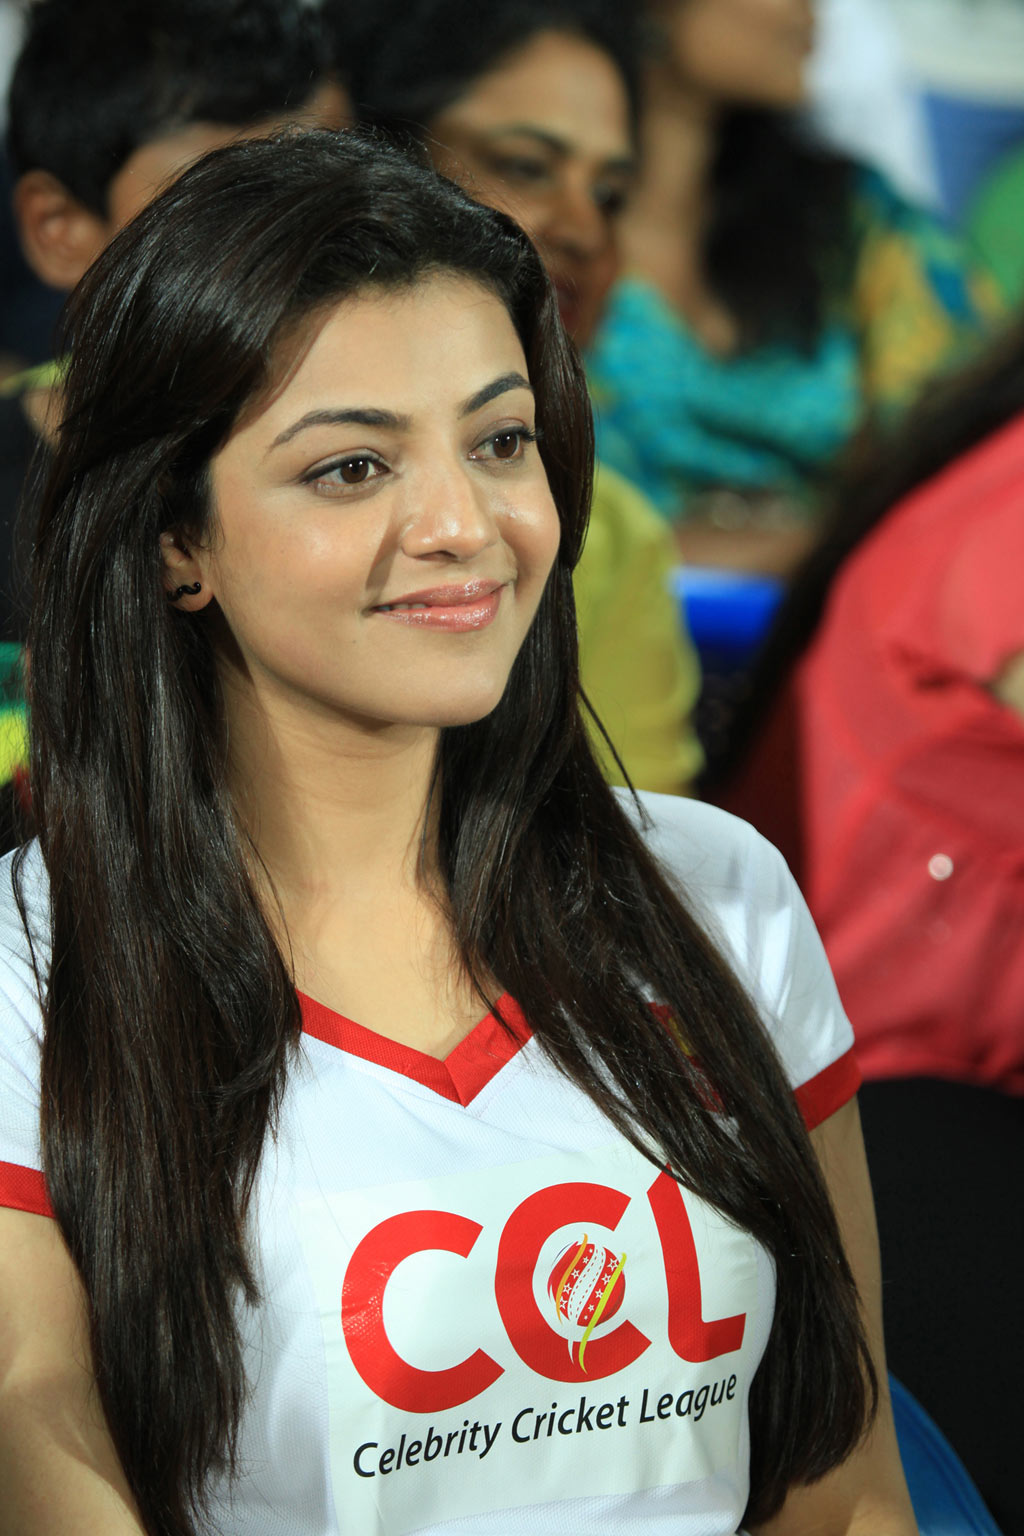 Actress in CCL Match Stills